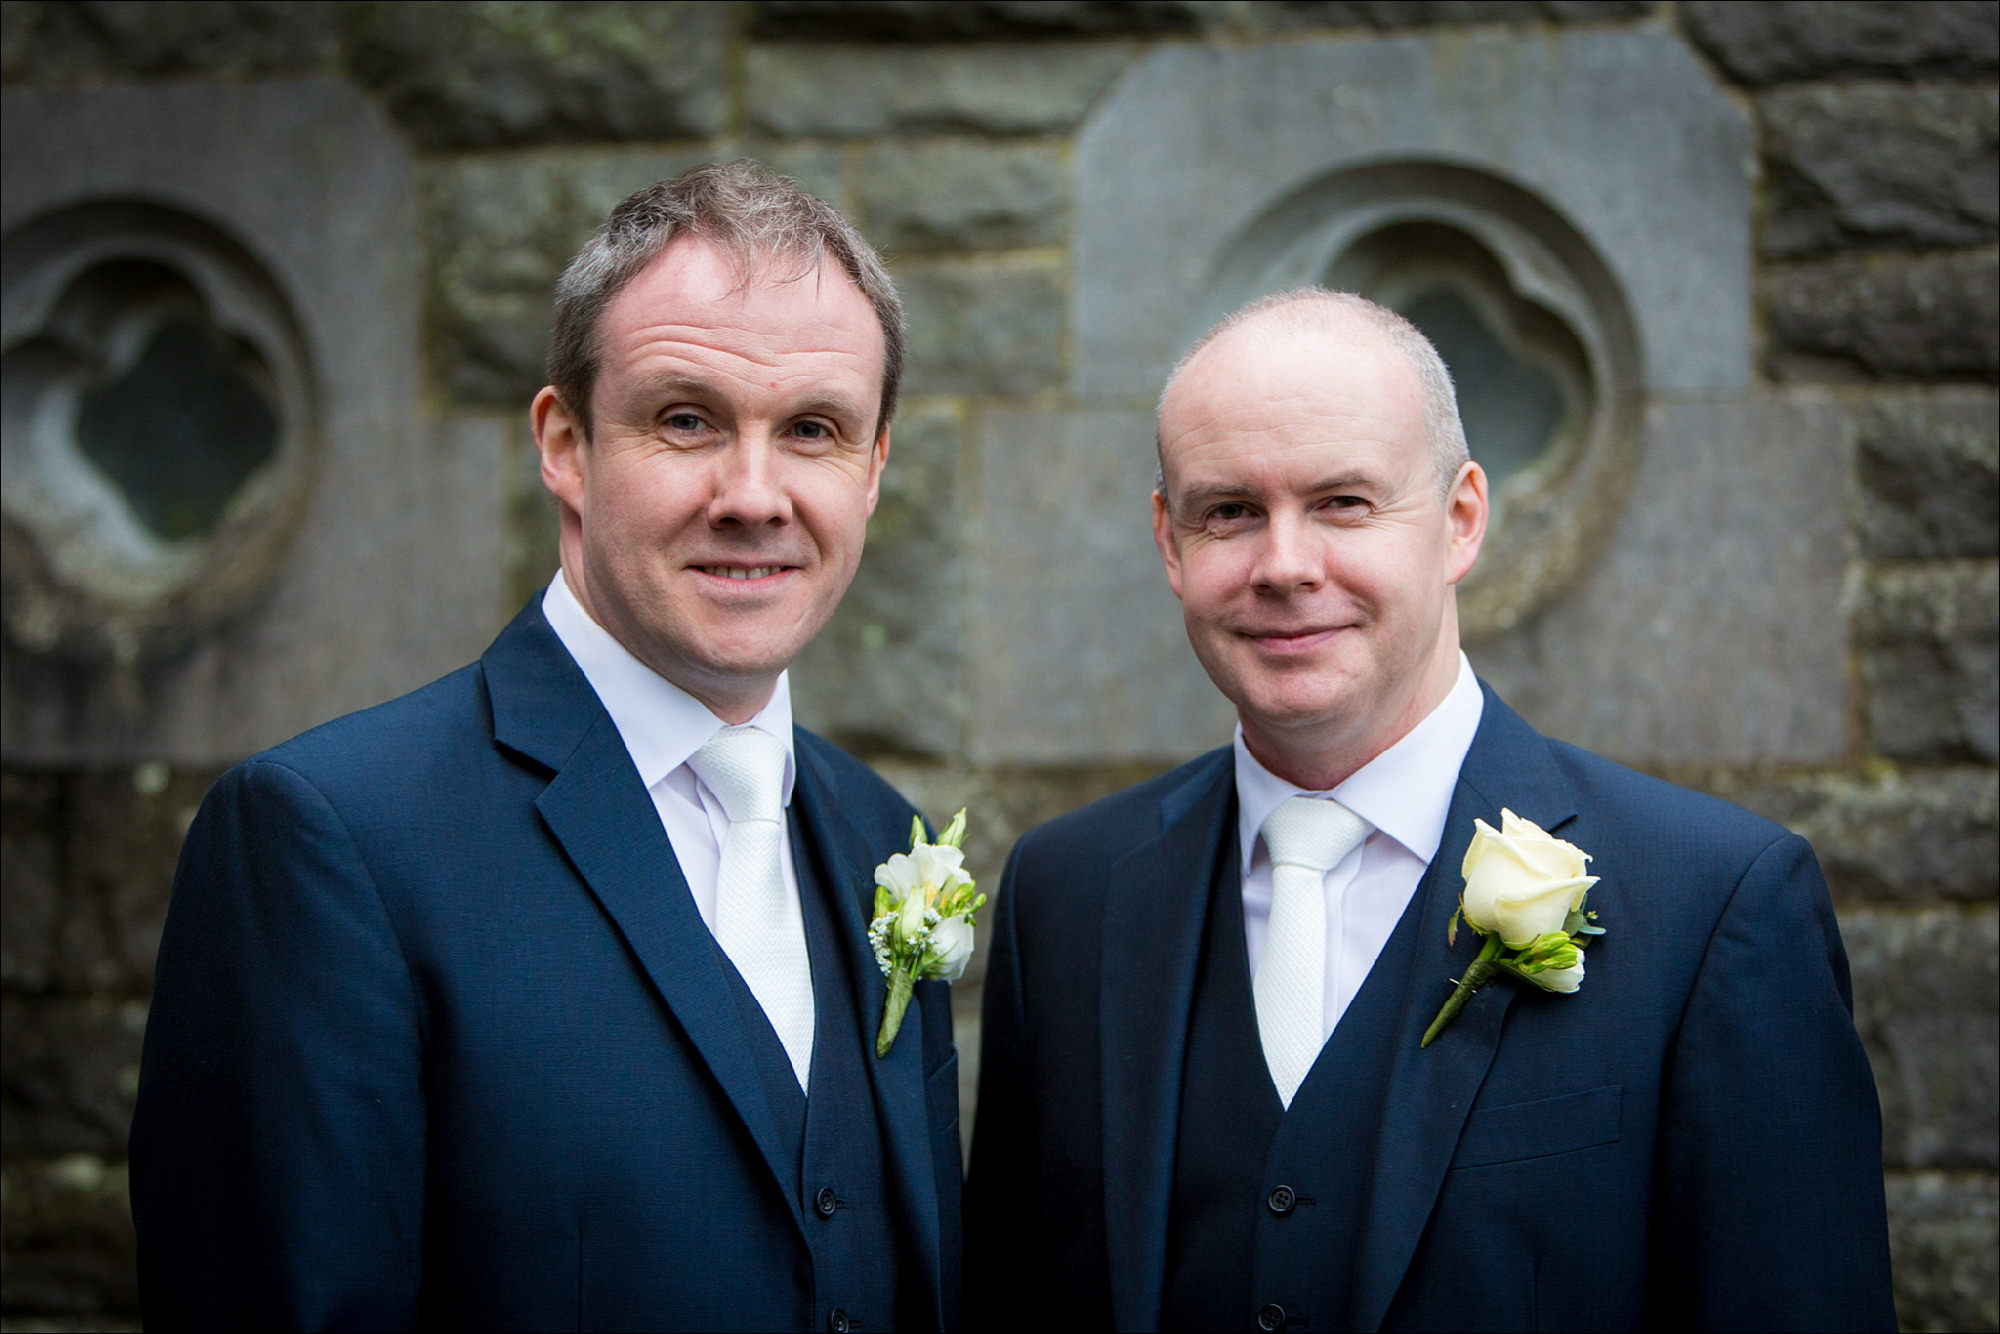 dublin wedding photographer david duignan photography tankardstown weddings slane rathfeigh church ireland 0015